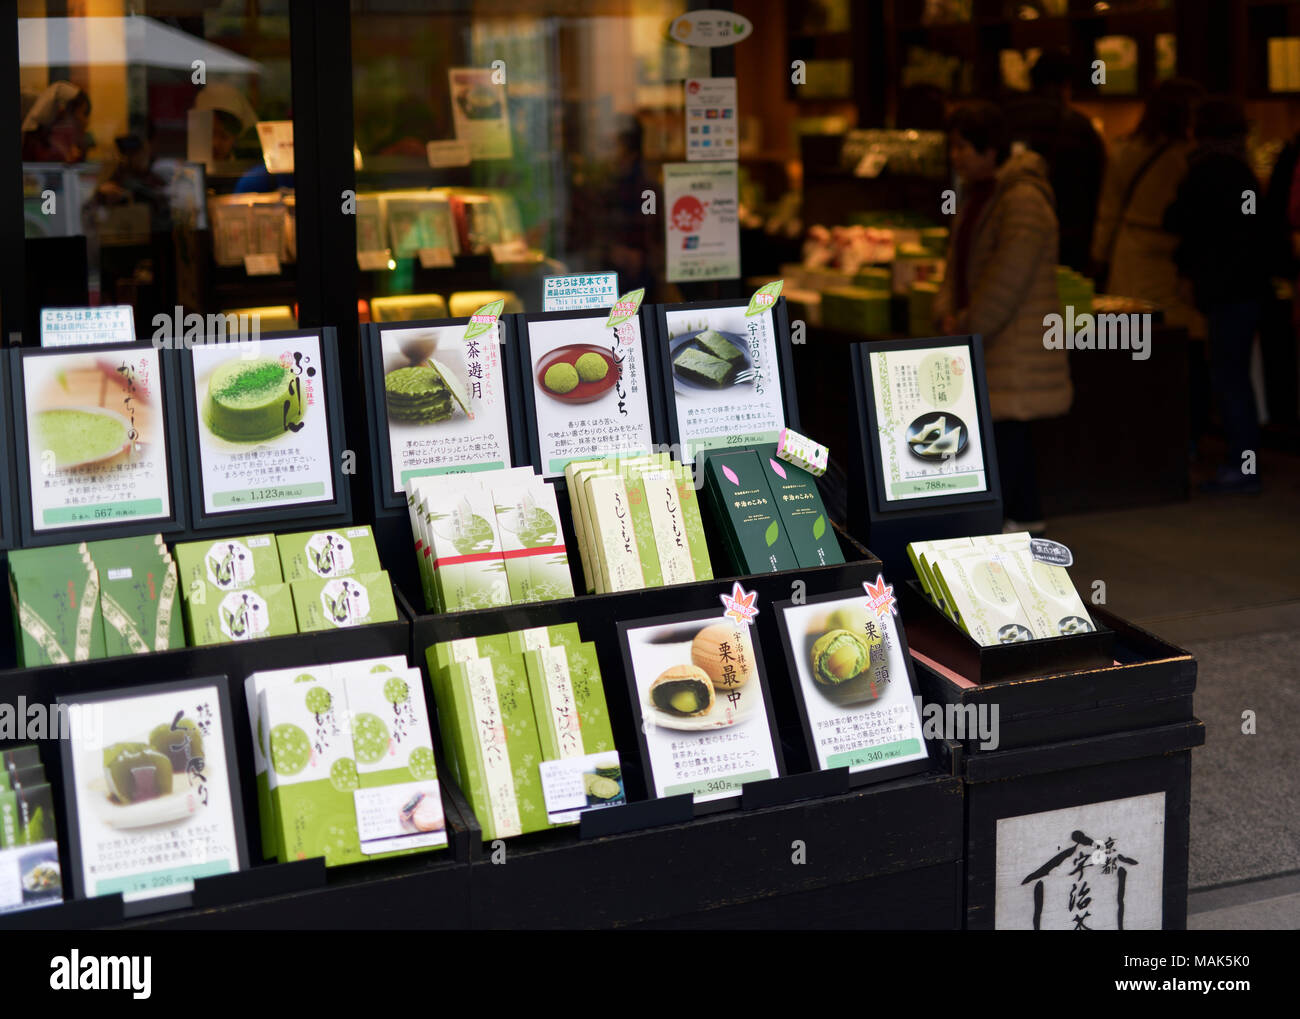 Traditional Japanese confectionery, matcha green tea treats and desserts, Miyagegashi souvenir sweets, on a store display in the city of Uji, Japanese Stock Photo